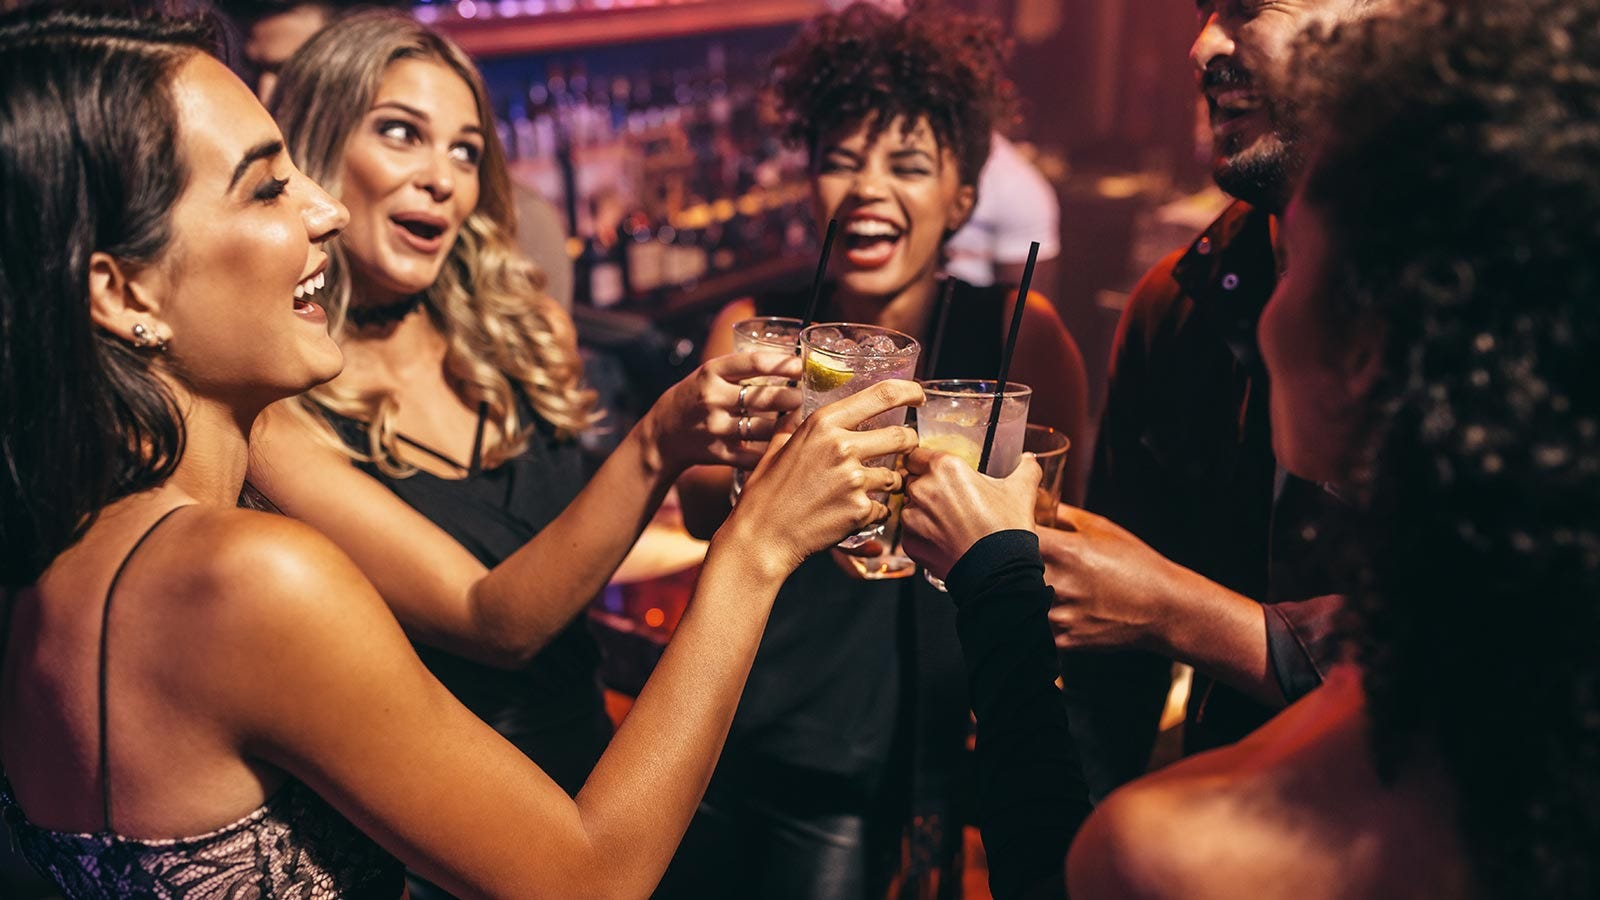 Group of people toasting with drinks at a bar.